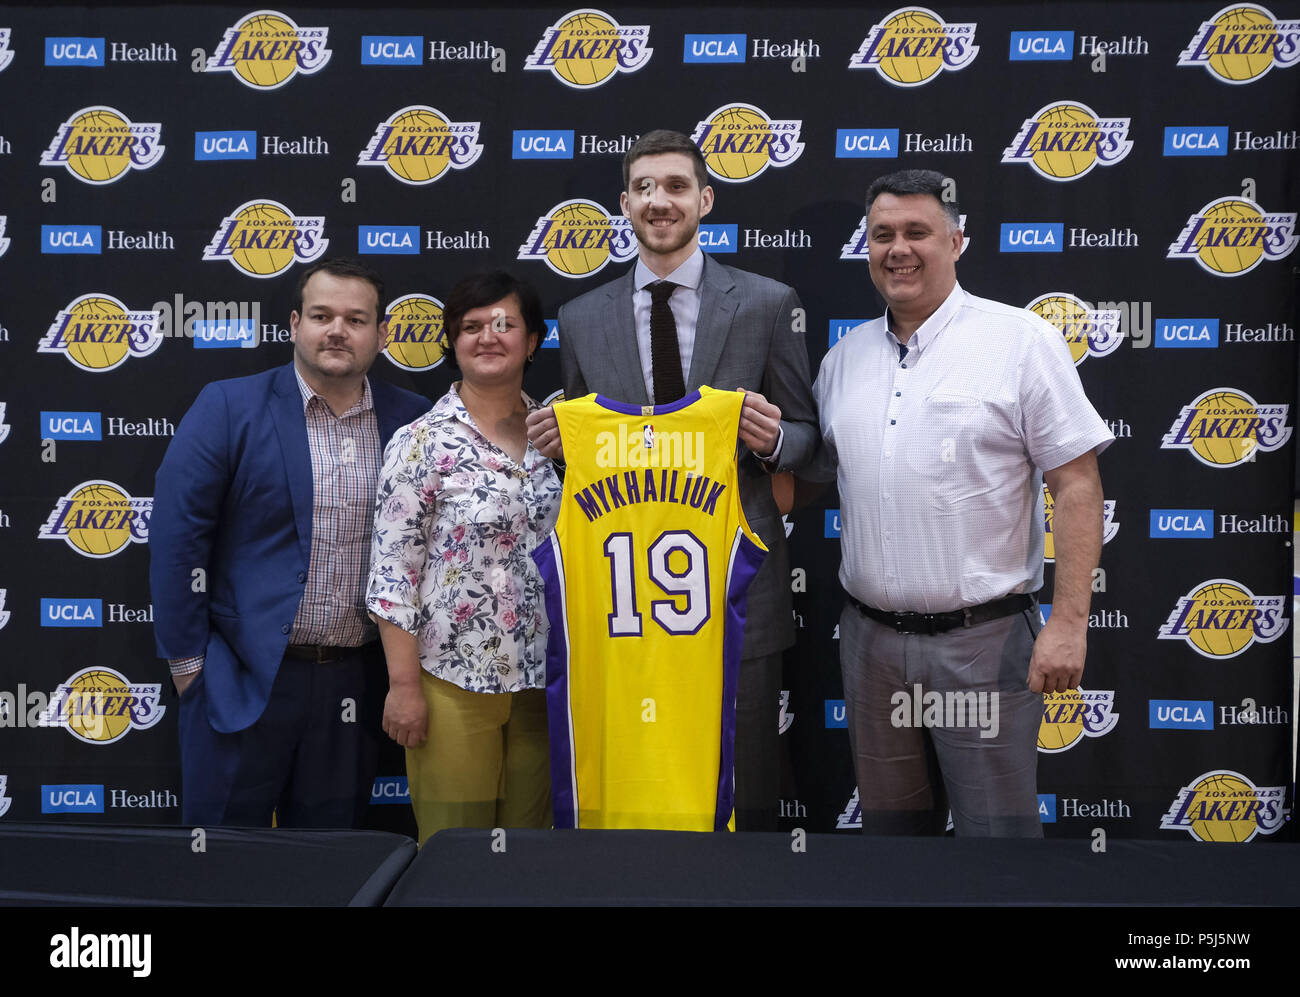 fb8a3a3325e Los Angeles Lakers rookie Sviatoslav Mykhailiuk holding his new jersey,  poses with his family at an introductory press conference in Los Angeles,  Tuesday, ...